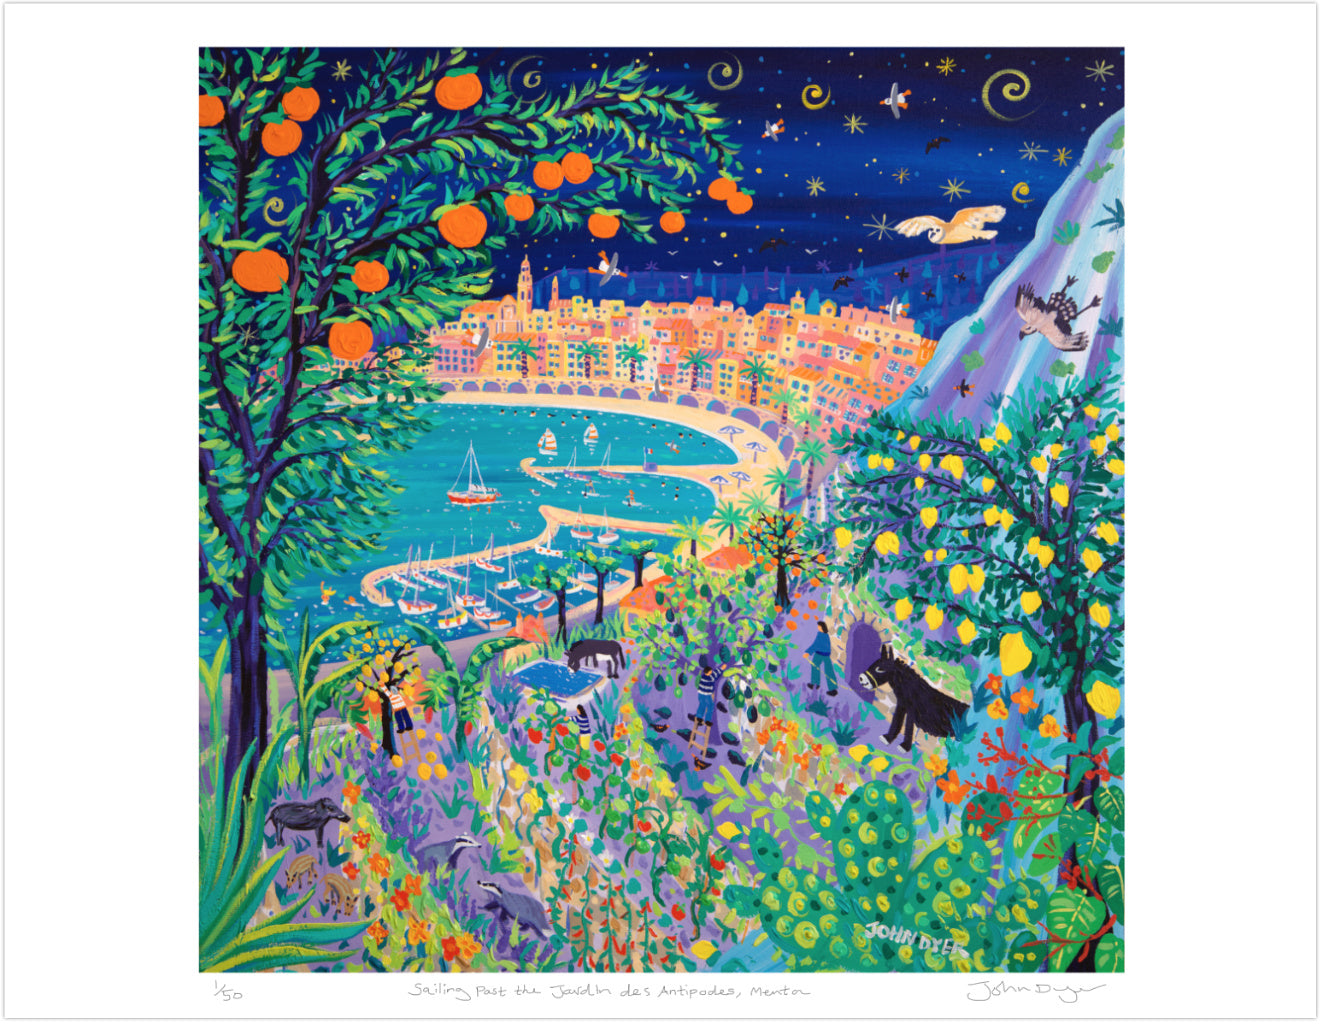 Limited edition print featuring John Dyer painting of the Jardin Des Antipodes, Menton